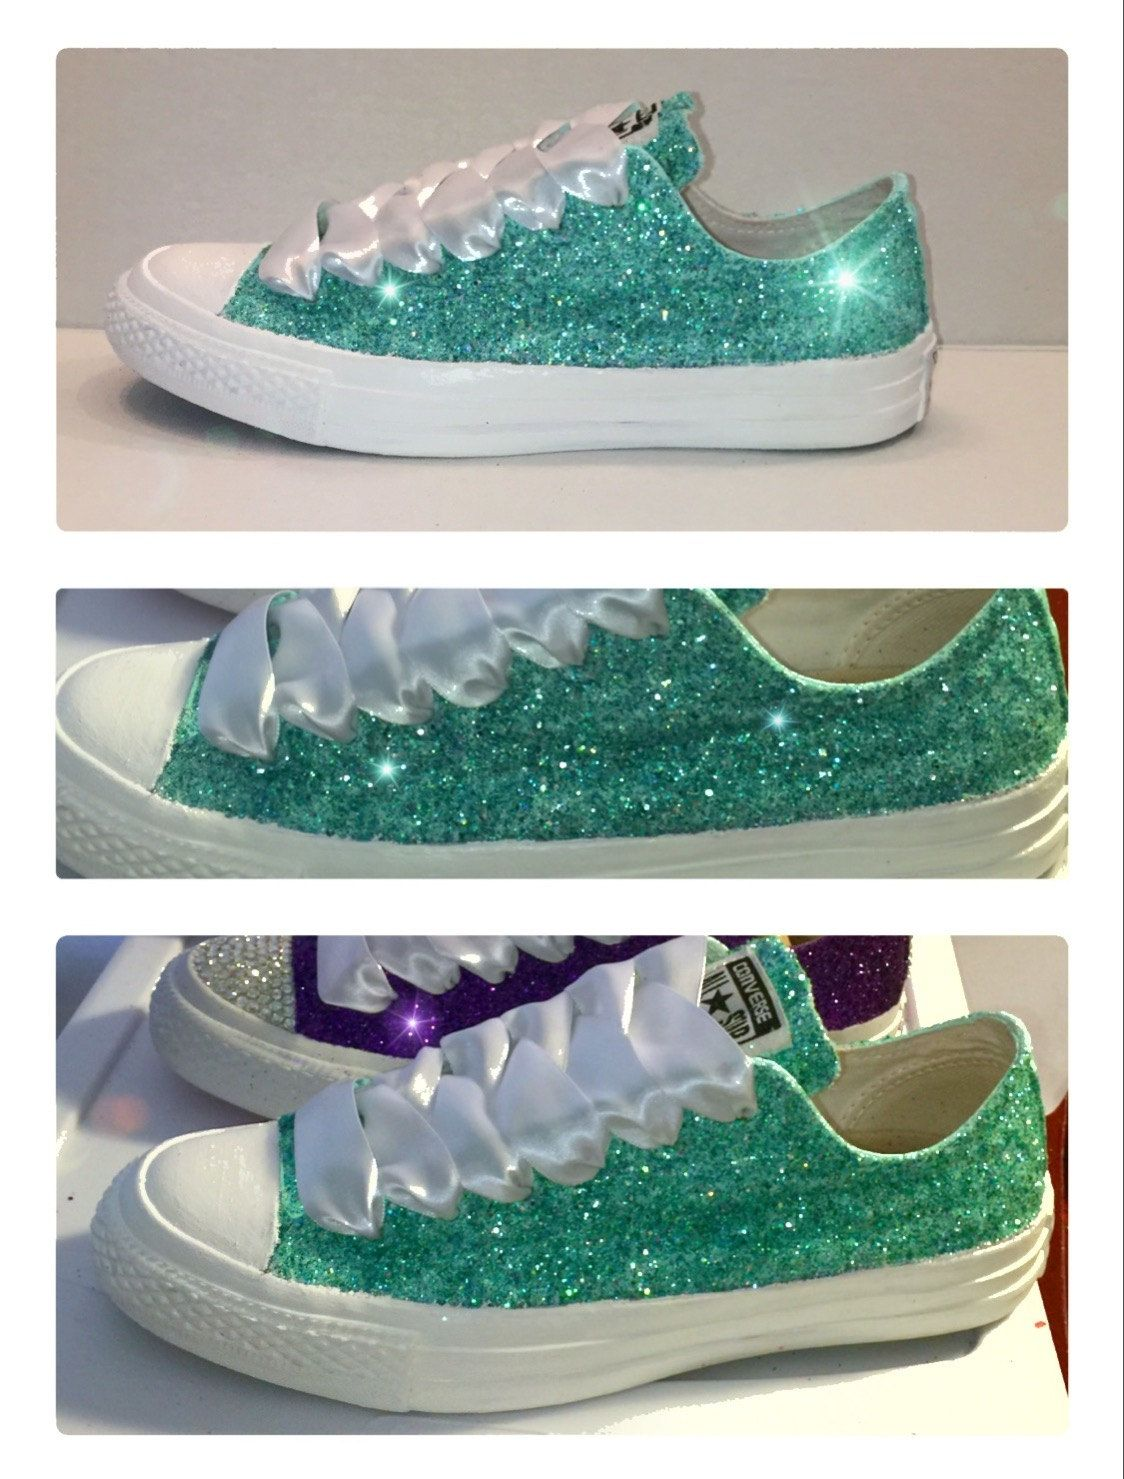 womens converse all star shoes handmade sparkly glitter